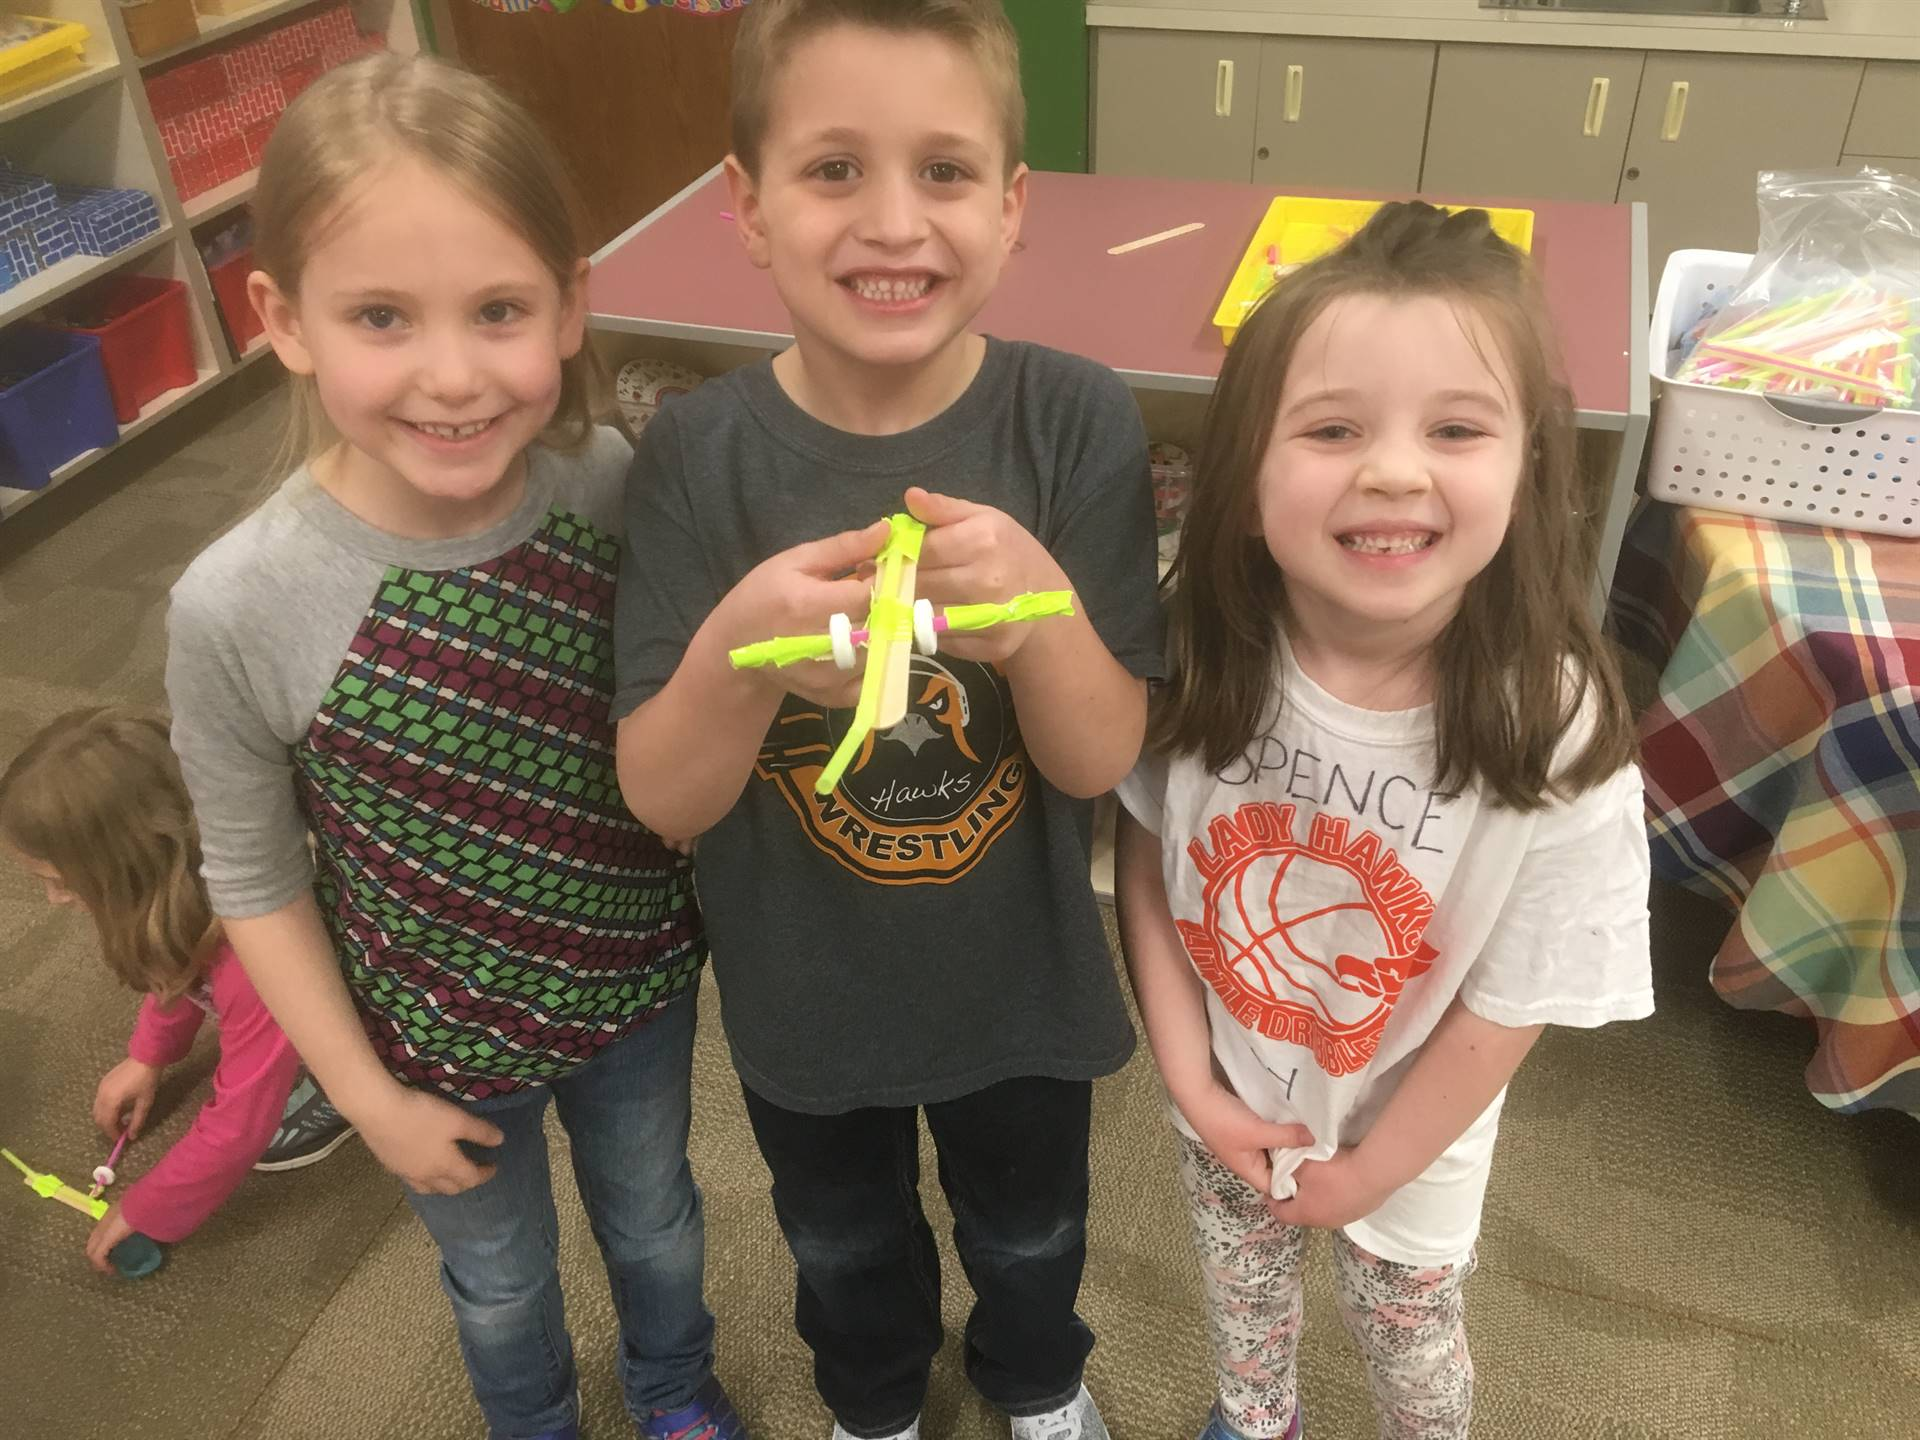 Three kindergarten students holding a balloon wheel car they made